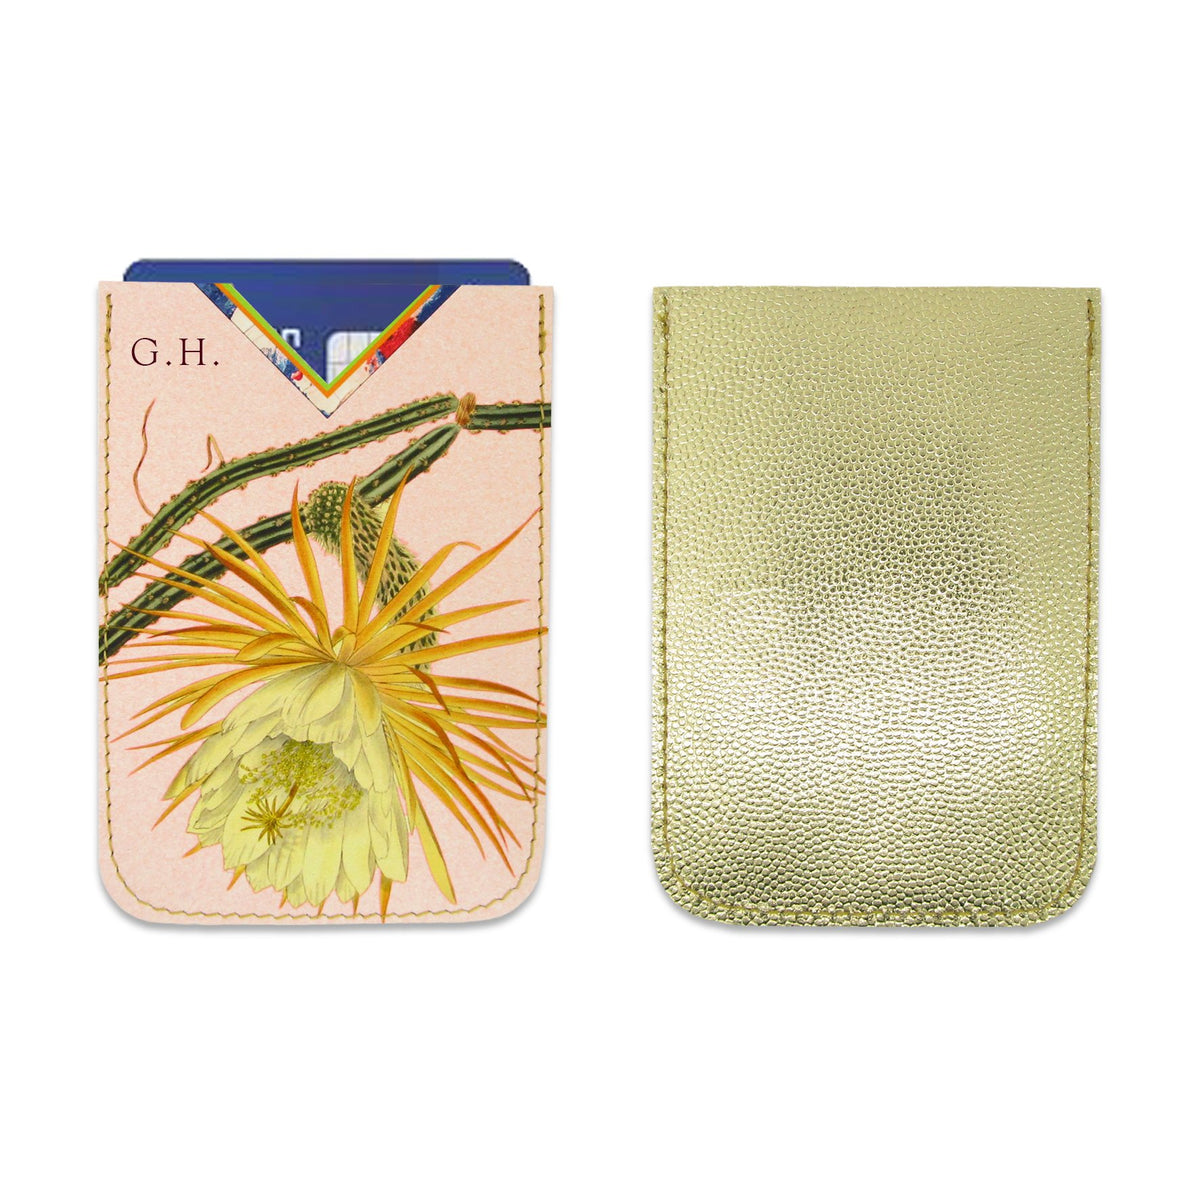 Leather Card Holder / Phone Sticker Wallet Pocket - Cactus Flower Wallet Tovi Sorga Standard Card Holder With personalisation Peach